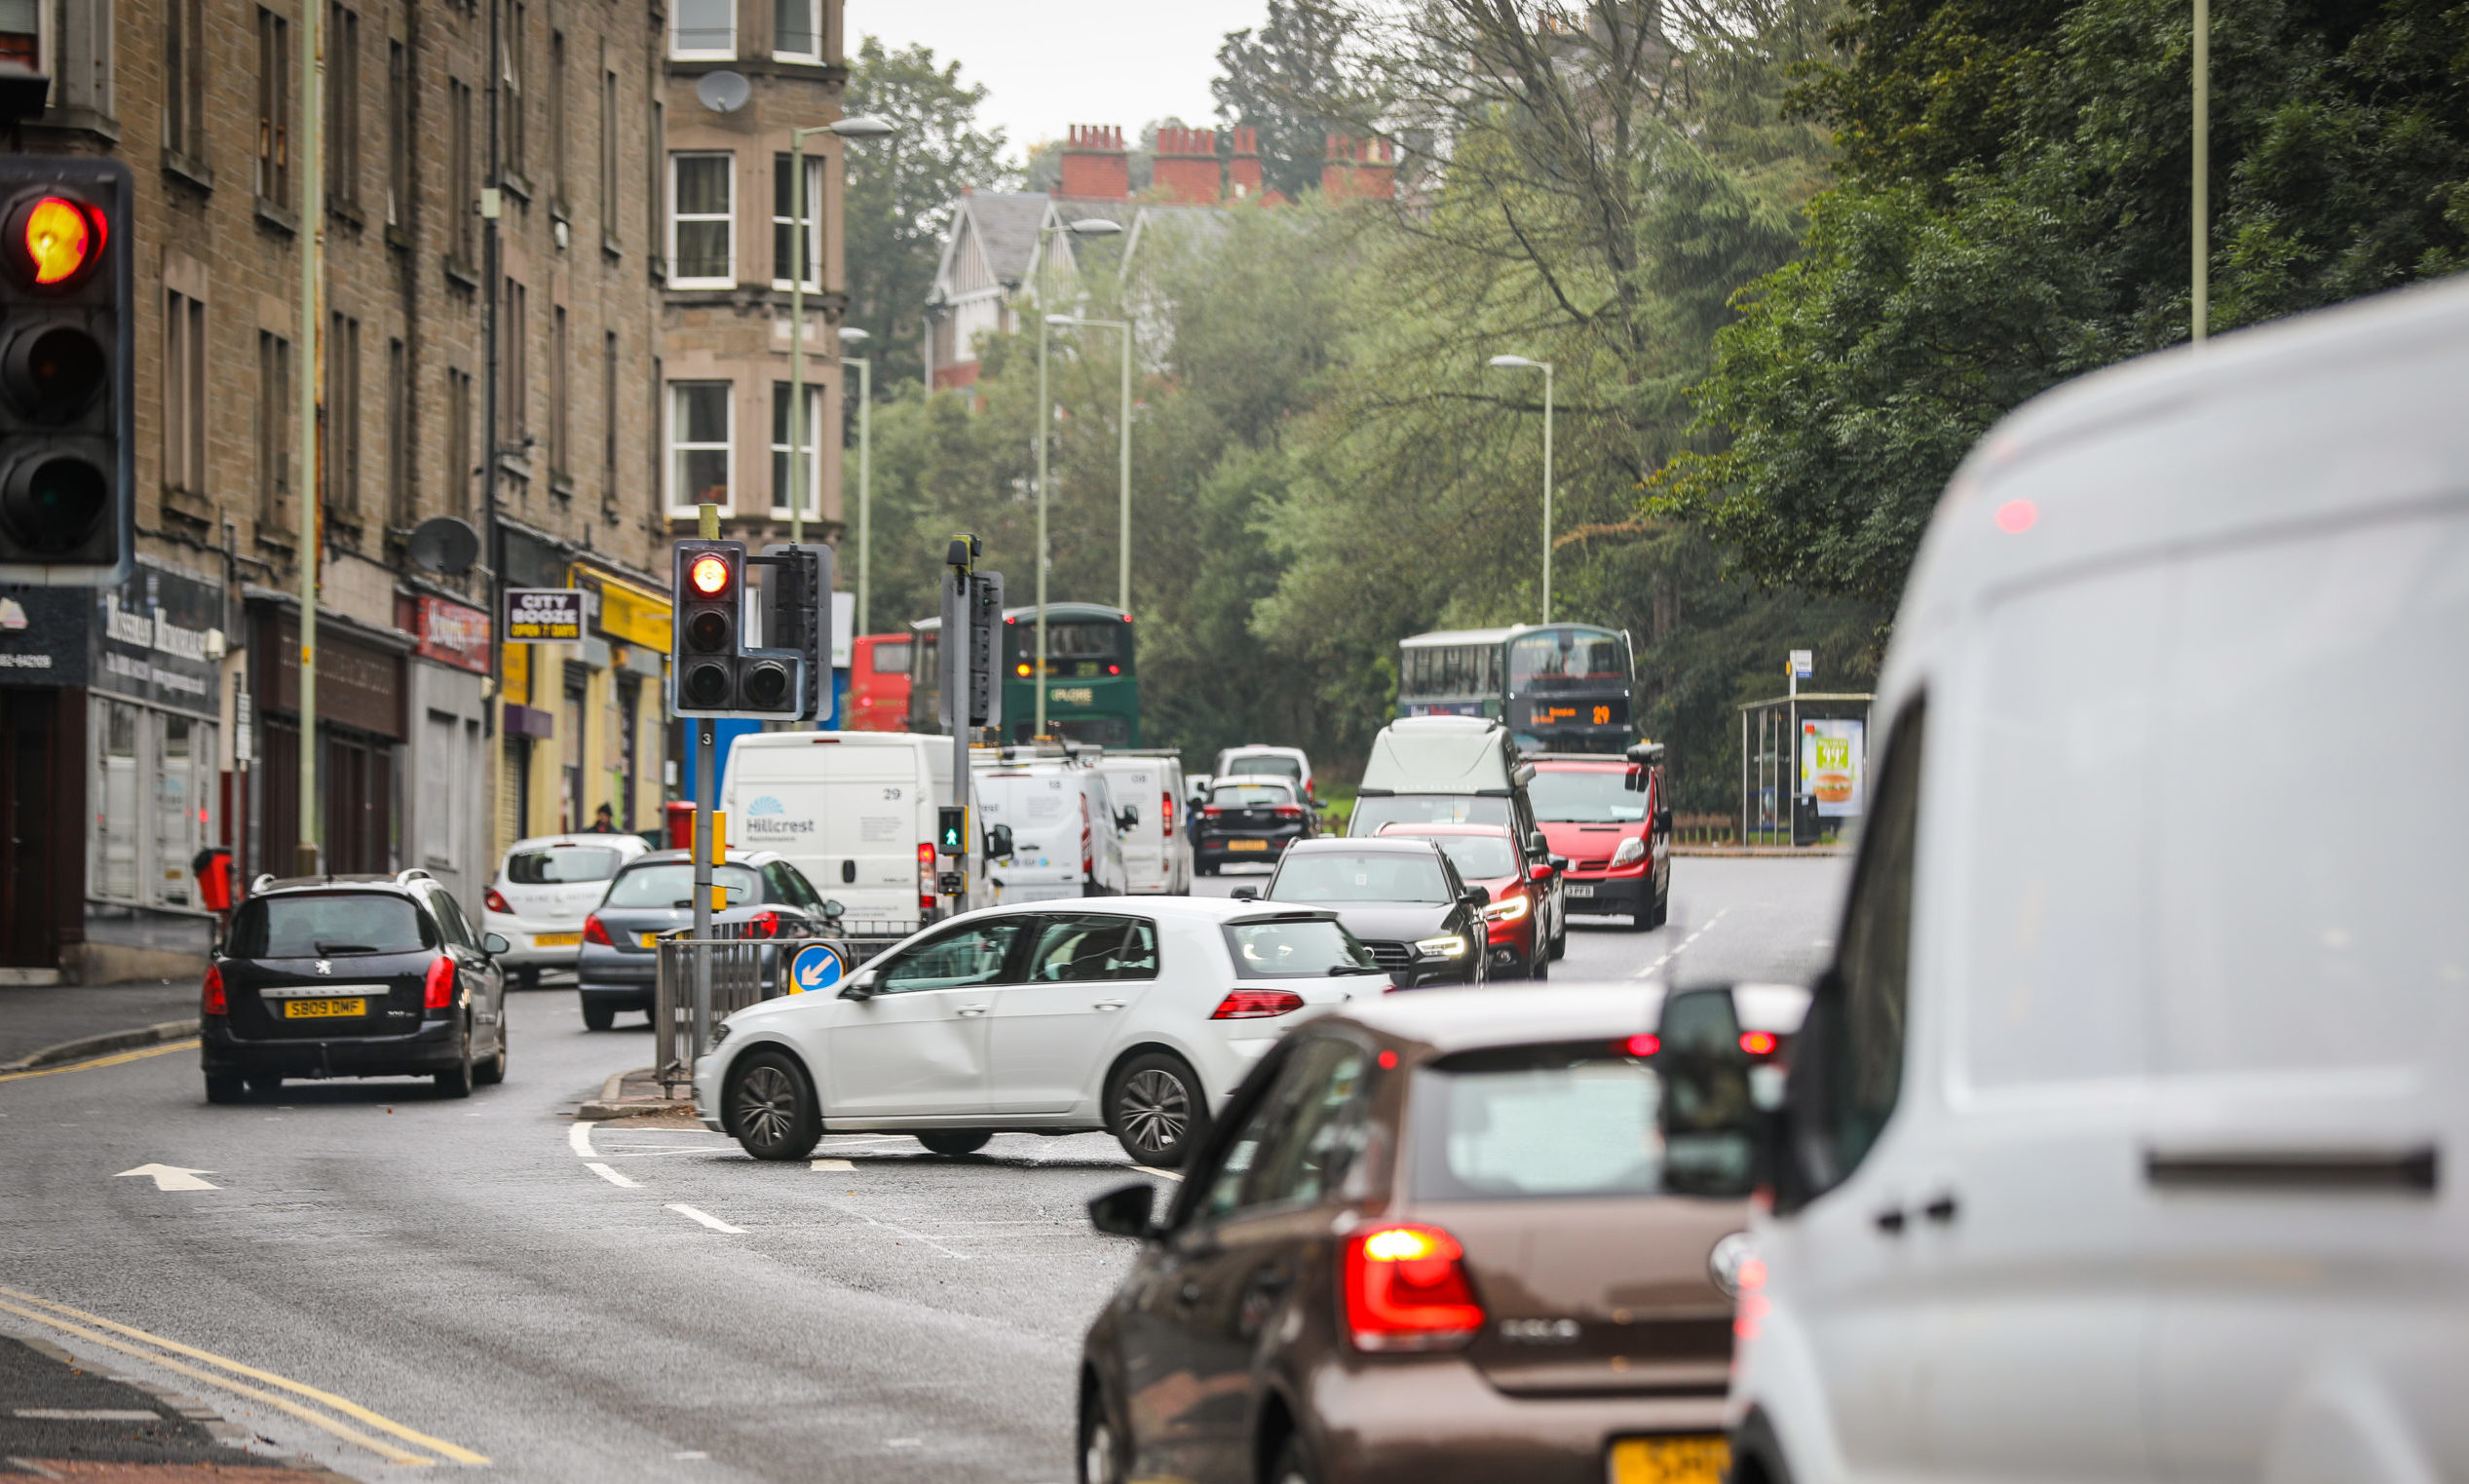 Campaigners believe low emission zone plans should extend to Lochee Road.